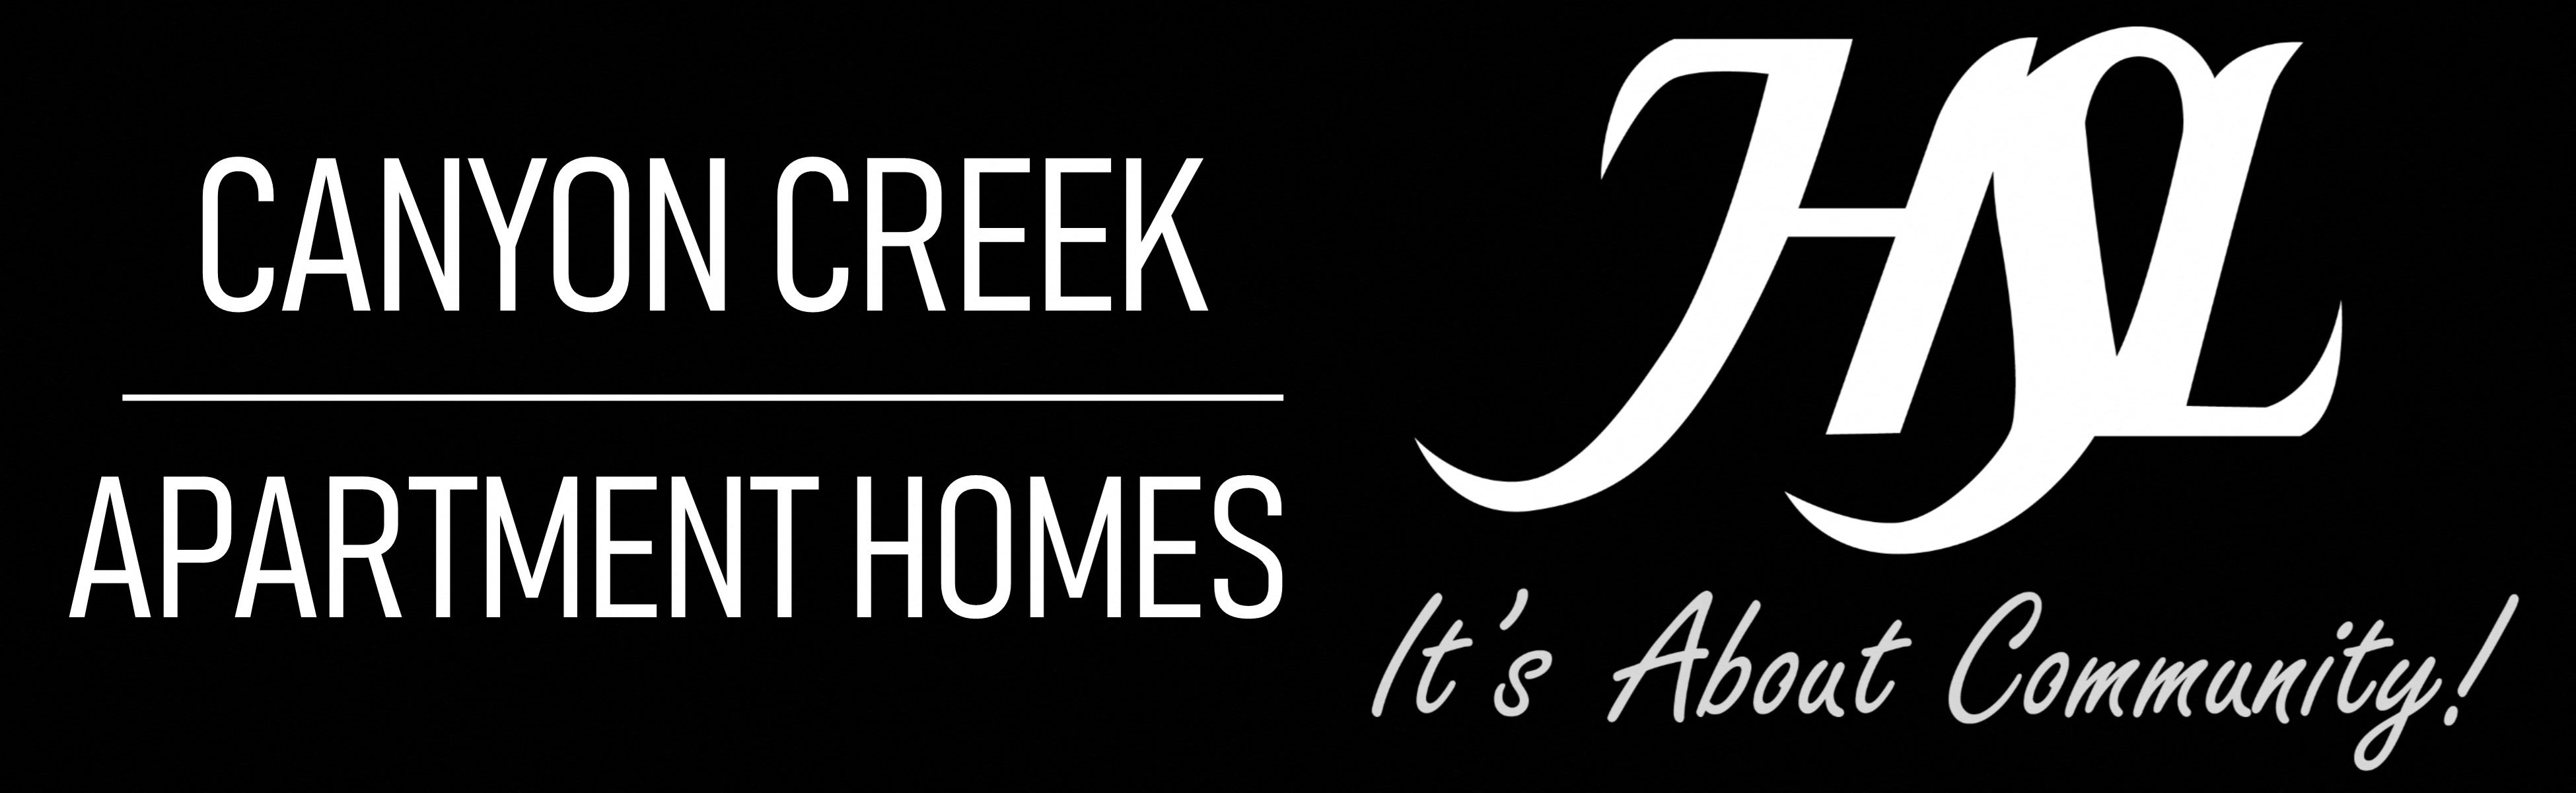 Canyon Creek Apartment Homes Logo